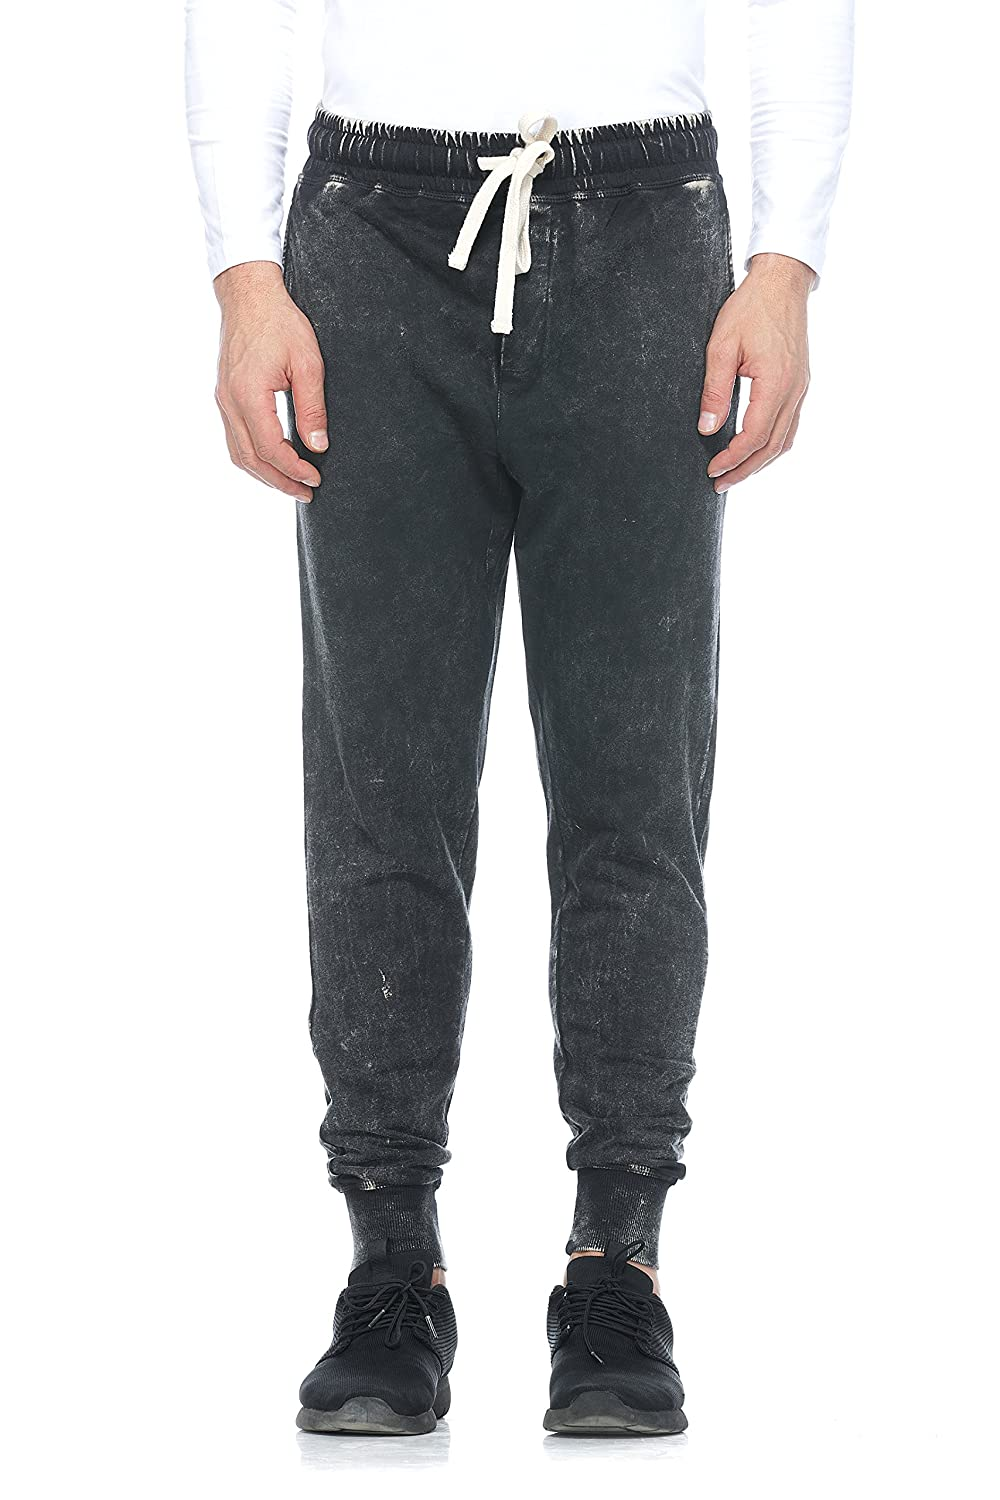 Tinted Men's Cotton Blend Trackpant